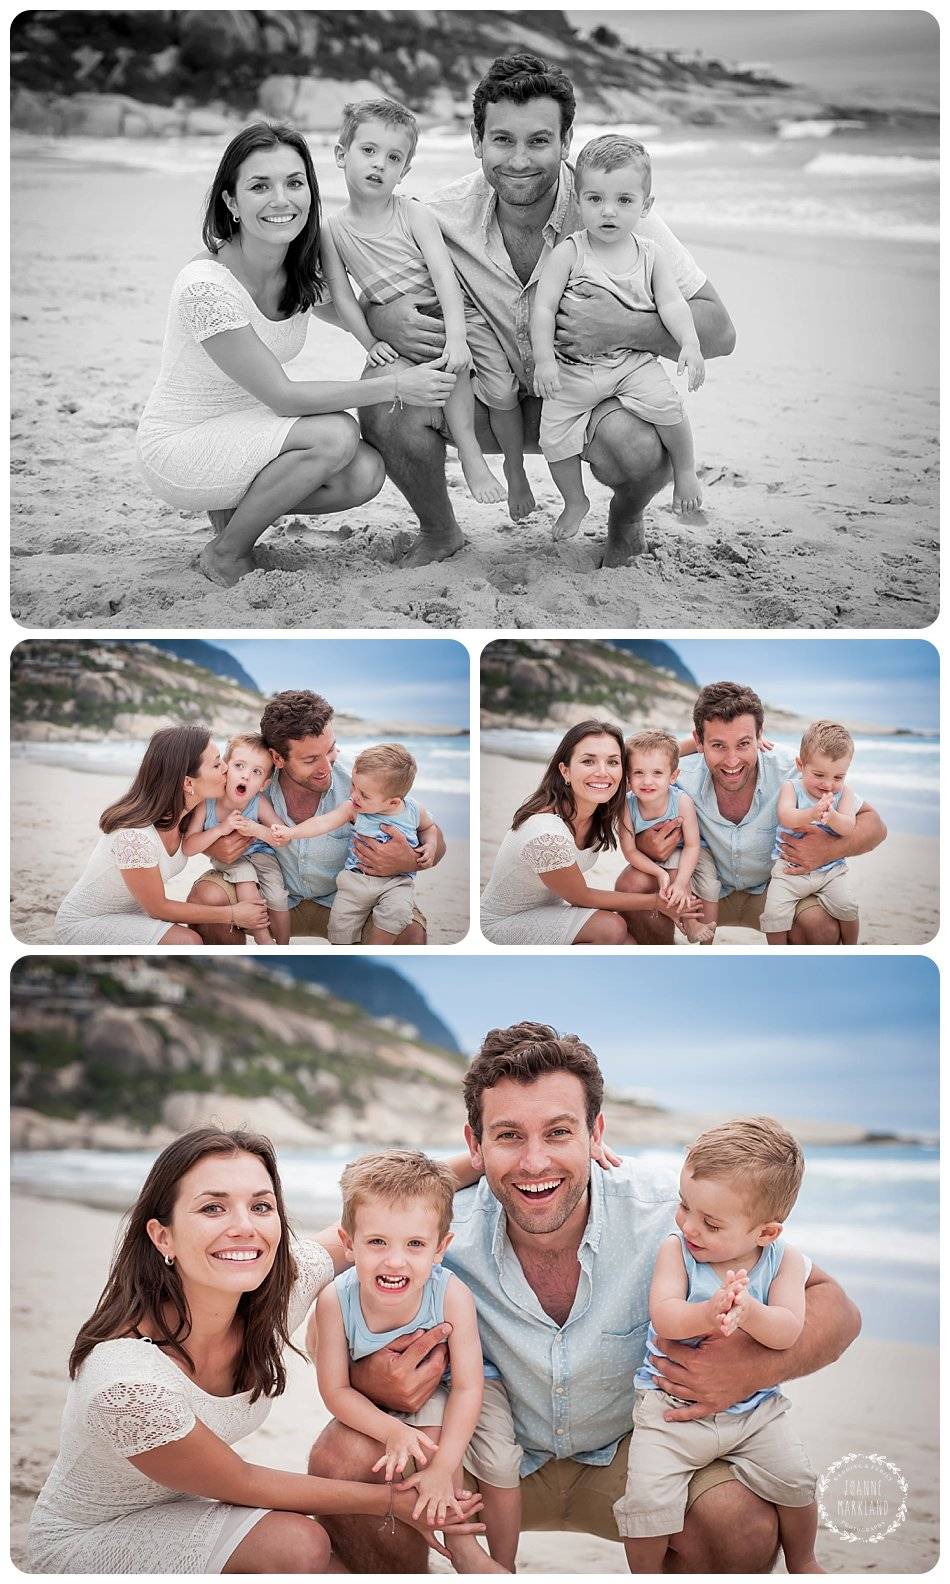 cape town beach photoshoot, cape town family photographer, family photographer cape town, joanne markland photography, family beach portraits, family, family portraits